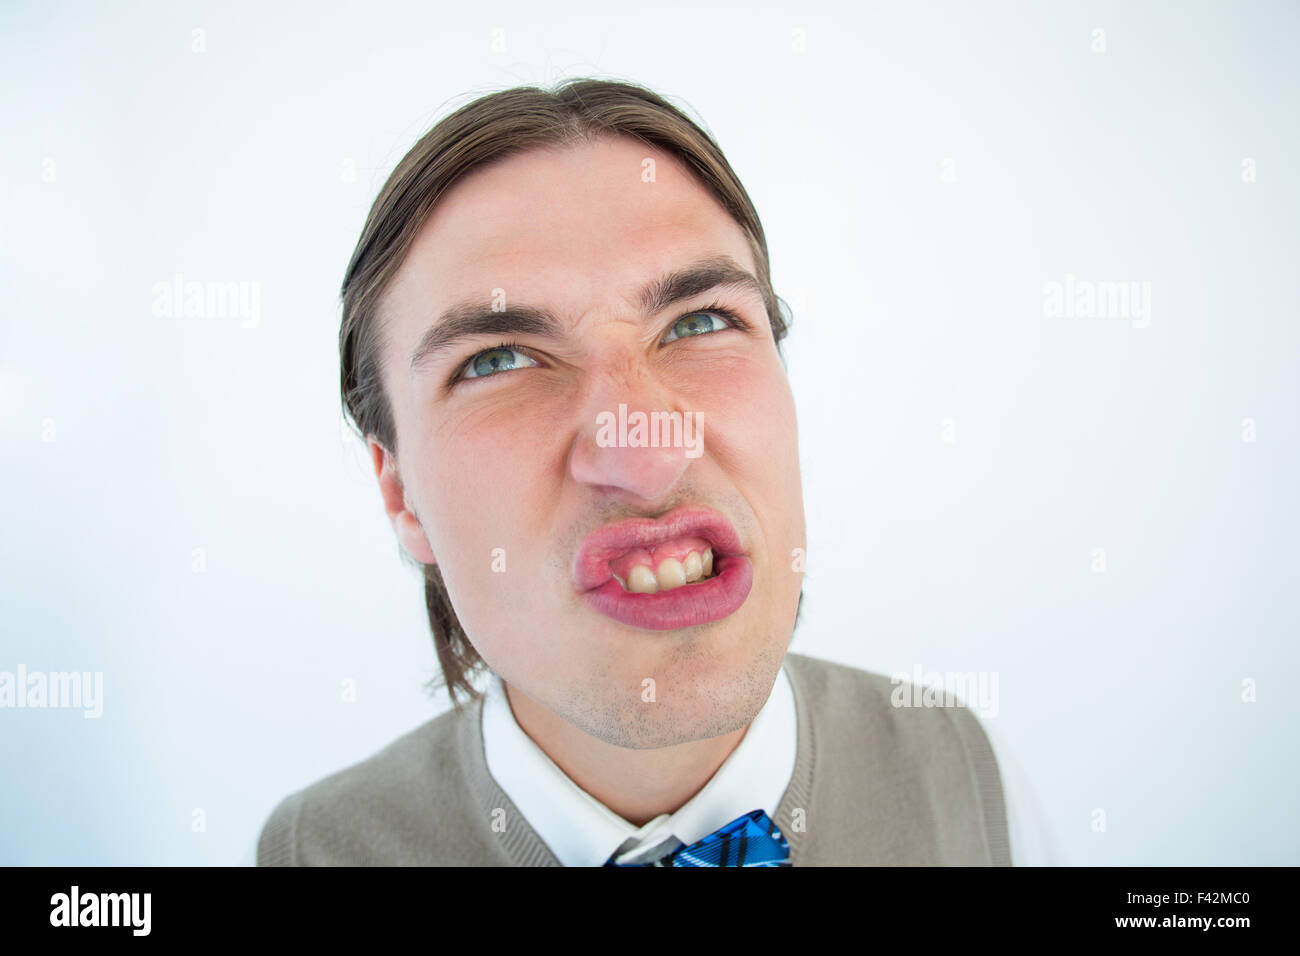 Geeky hipster grimacing - Stock Image